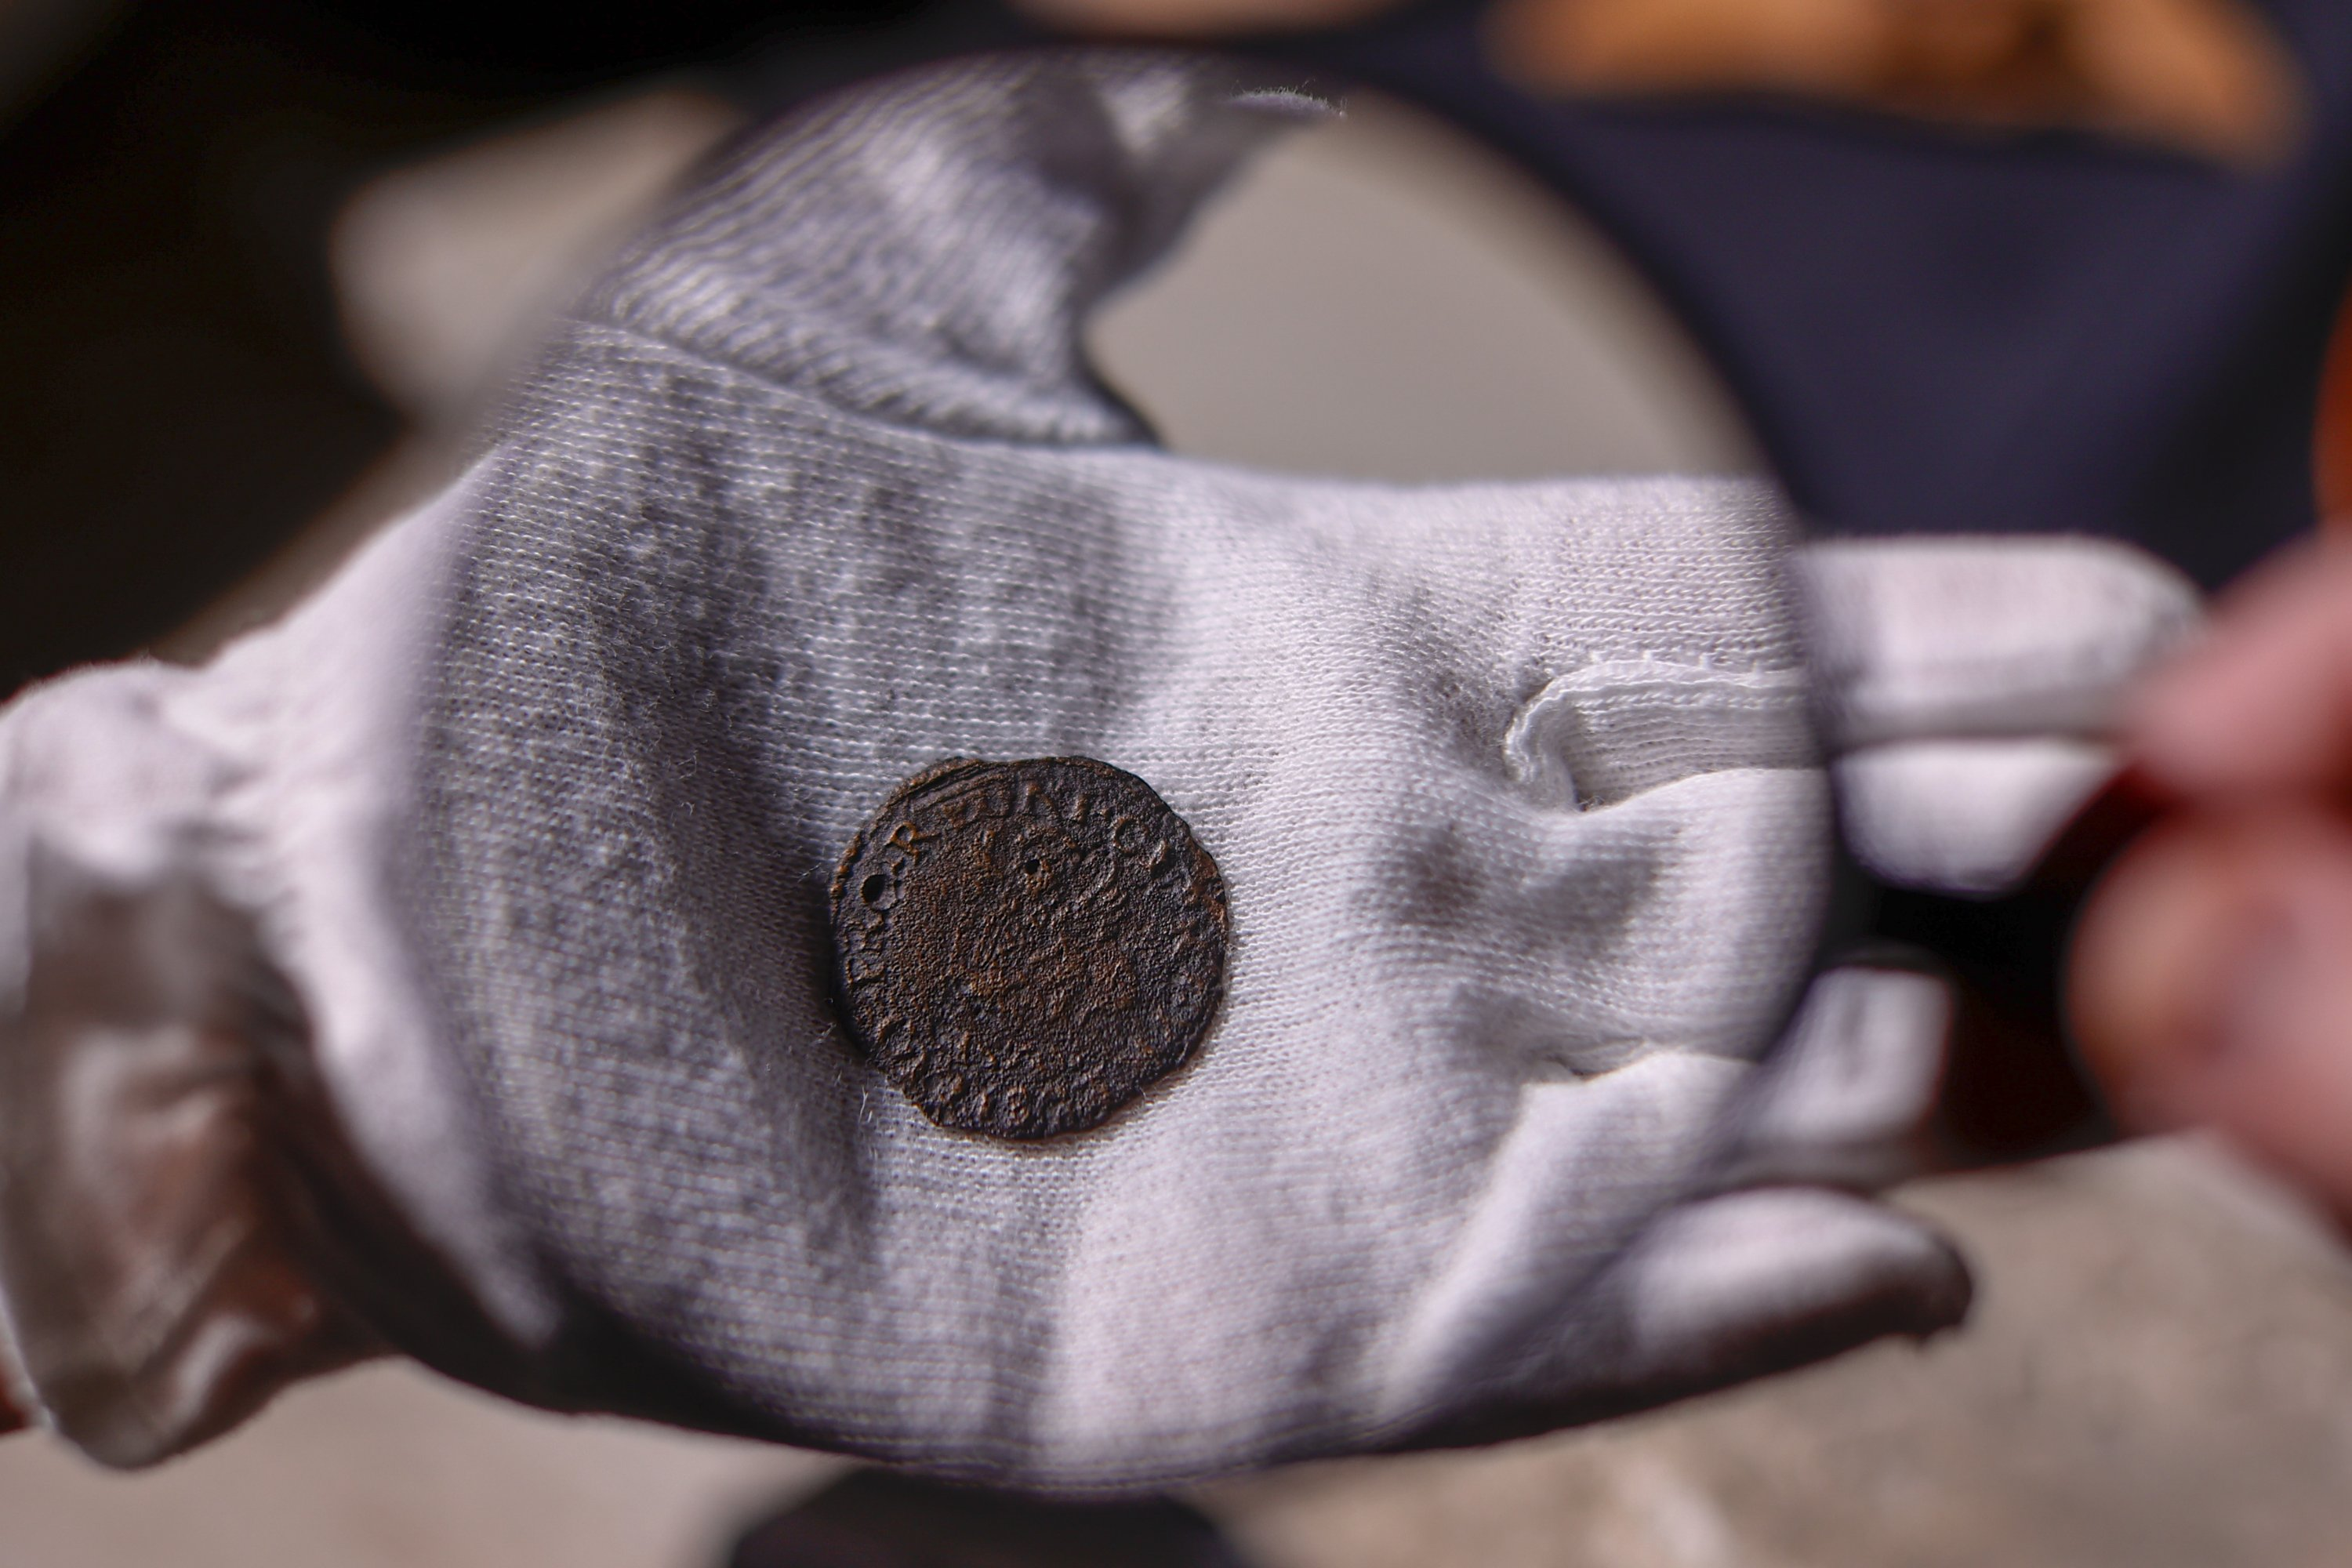 A coin found in the ancient city of Phanagoria seen through a magnifying glass, Russia, Oct. 1, 2021. (AA Photo)